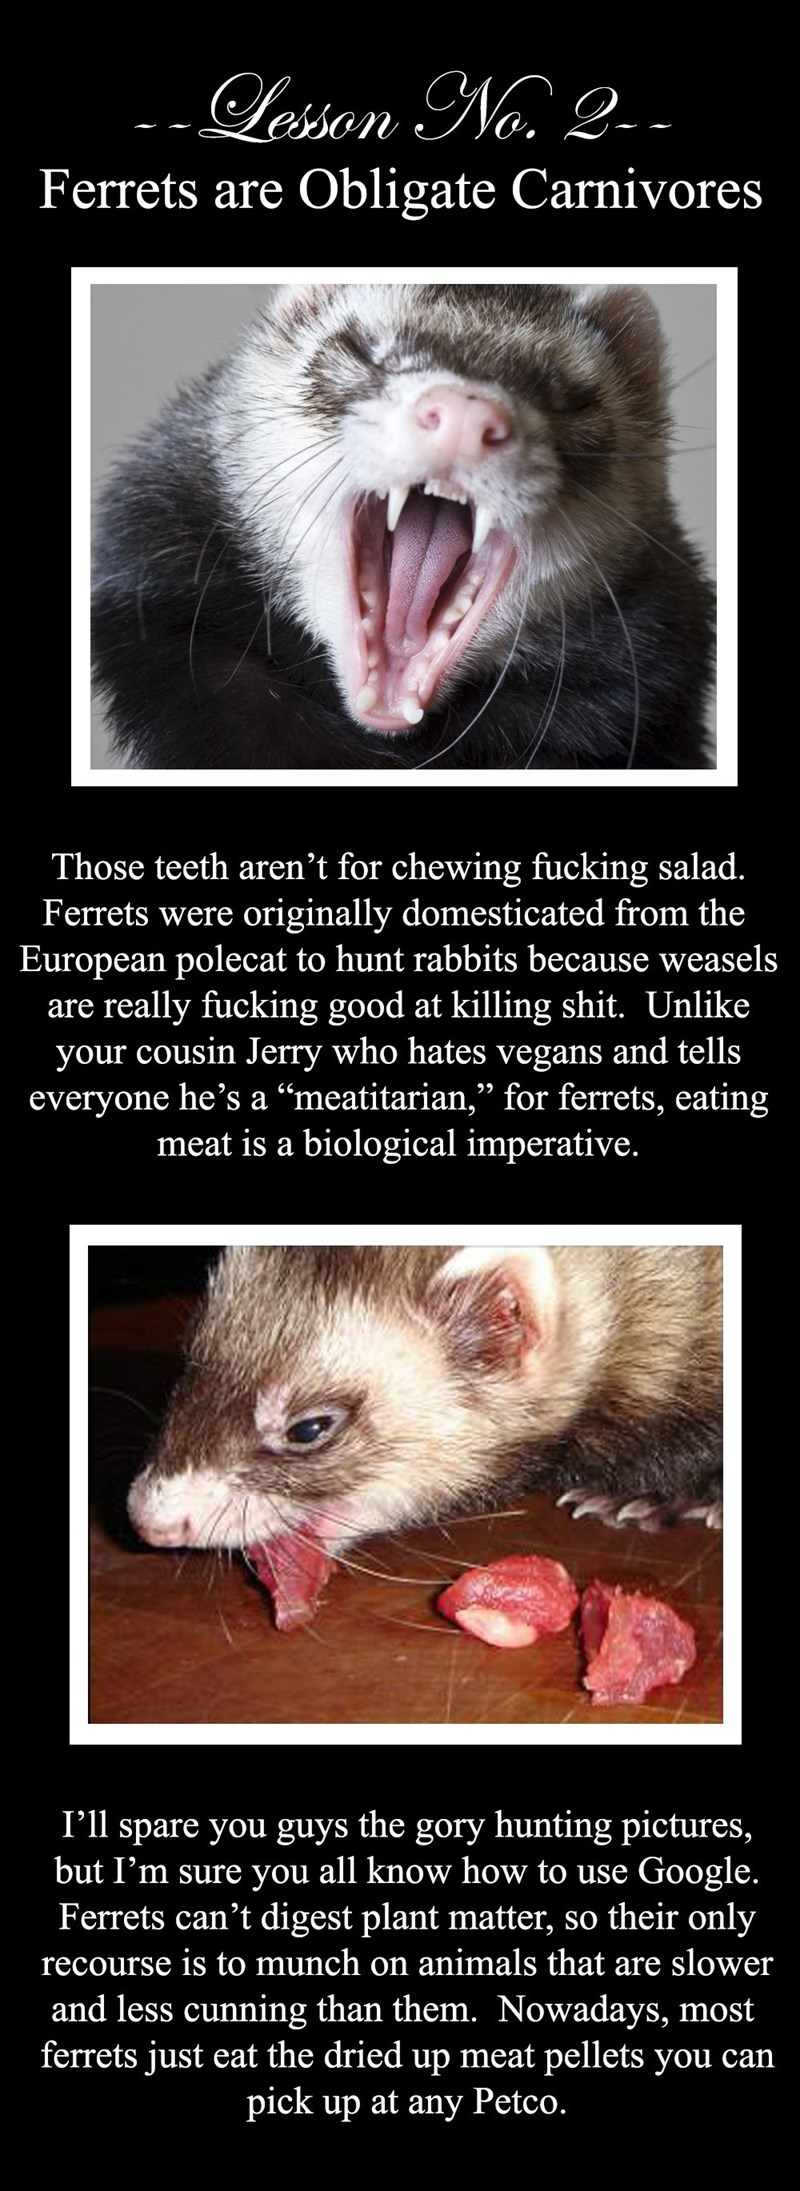 "Mammal - esson No. 2 Ferrets are Obligate Carnivores Those teeth aren't for chewing fucking salad. Ferrets were originally domesticated from the European polecat to hunt rabbits because weasels are really fucking good at killing shit. Unlike your cousin Jerry who hates vegans and tells everyone he's a ""meatitarian,"" for ferrets, eating meat is a biological imperative. the I'll spare you guys but I'm sure you all know how to use Google. Ferrets can't digest plant matter, so their only gory huntin"